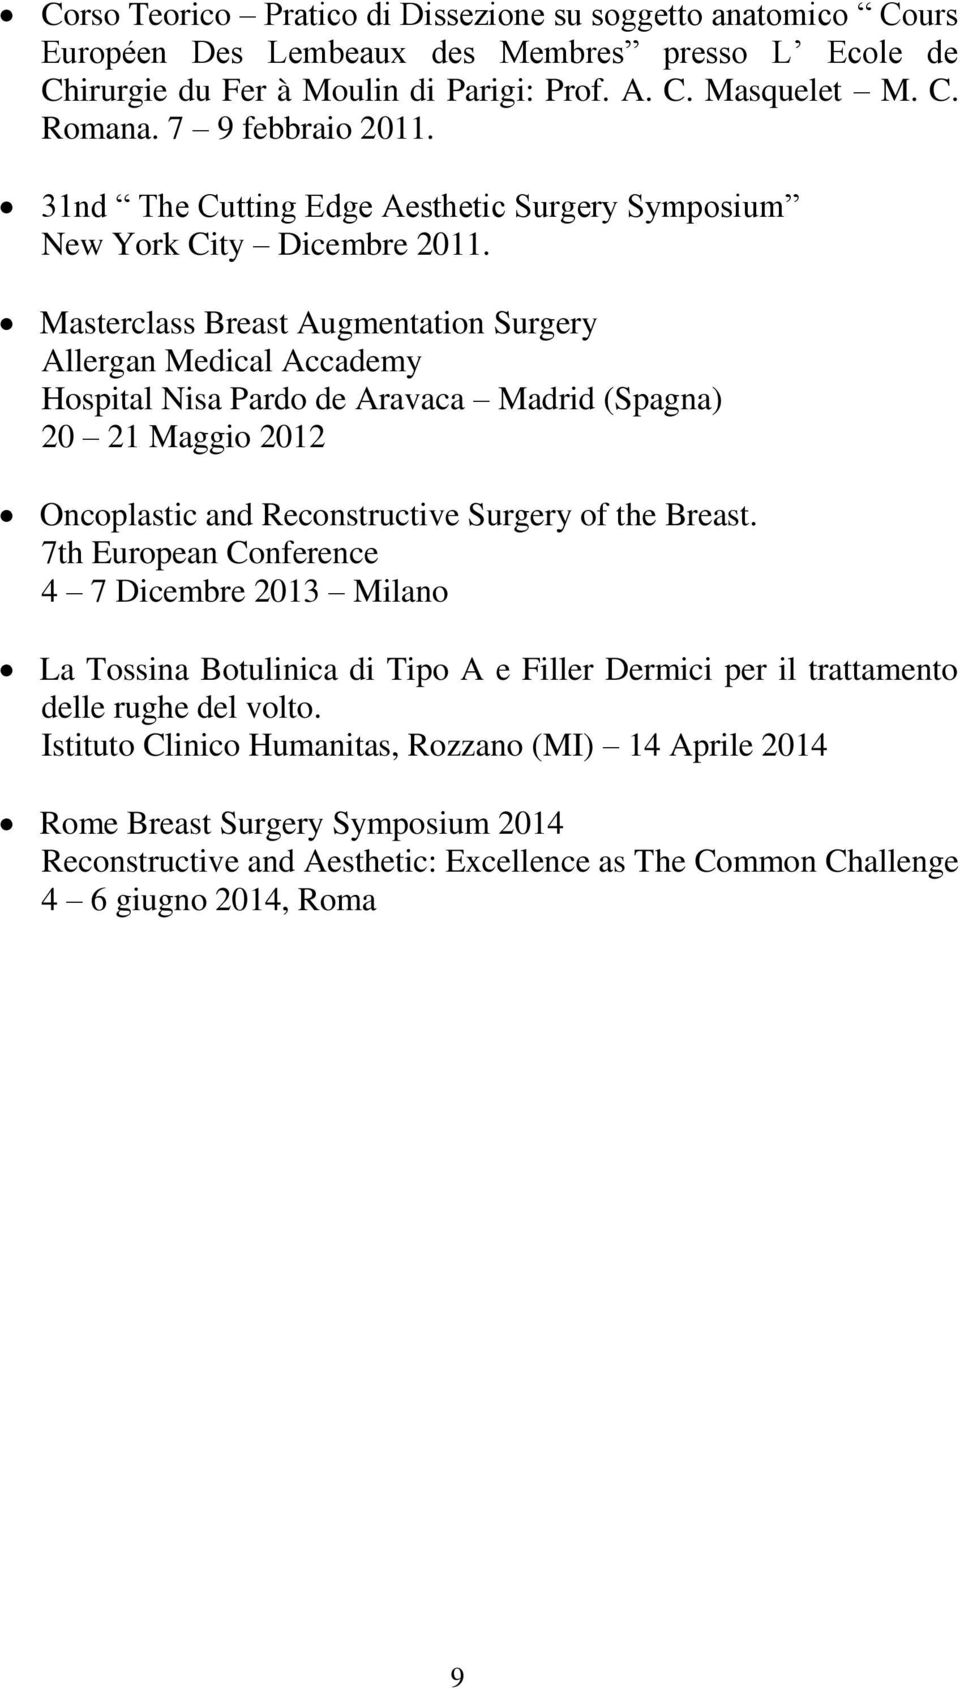 Masterclass Breast Augmentation Surgery Allergan Medical Accademy Hospital Nisa Pardo de Aravaca Madrid (Spagna) 20 21 Maggio 2012 Oncoplastic and Reconstructive Surgery of the Breast.